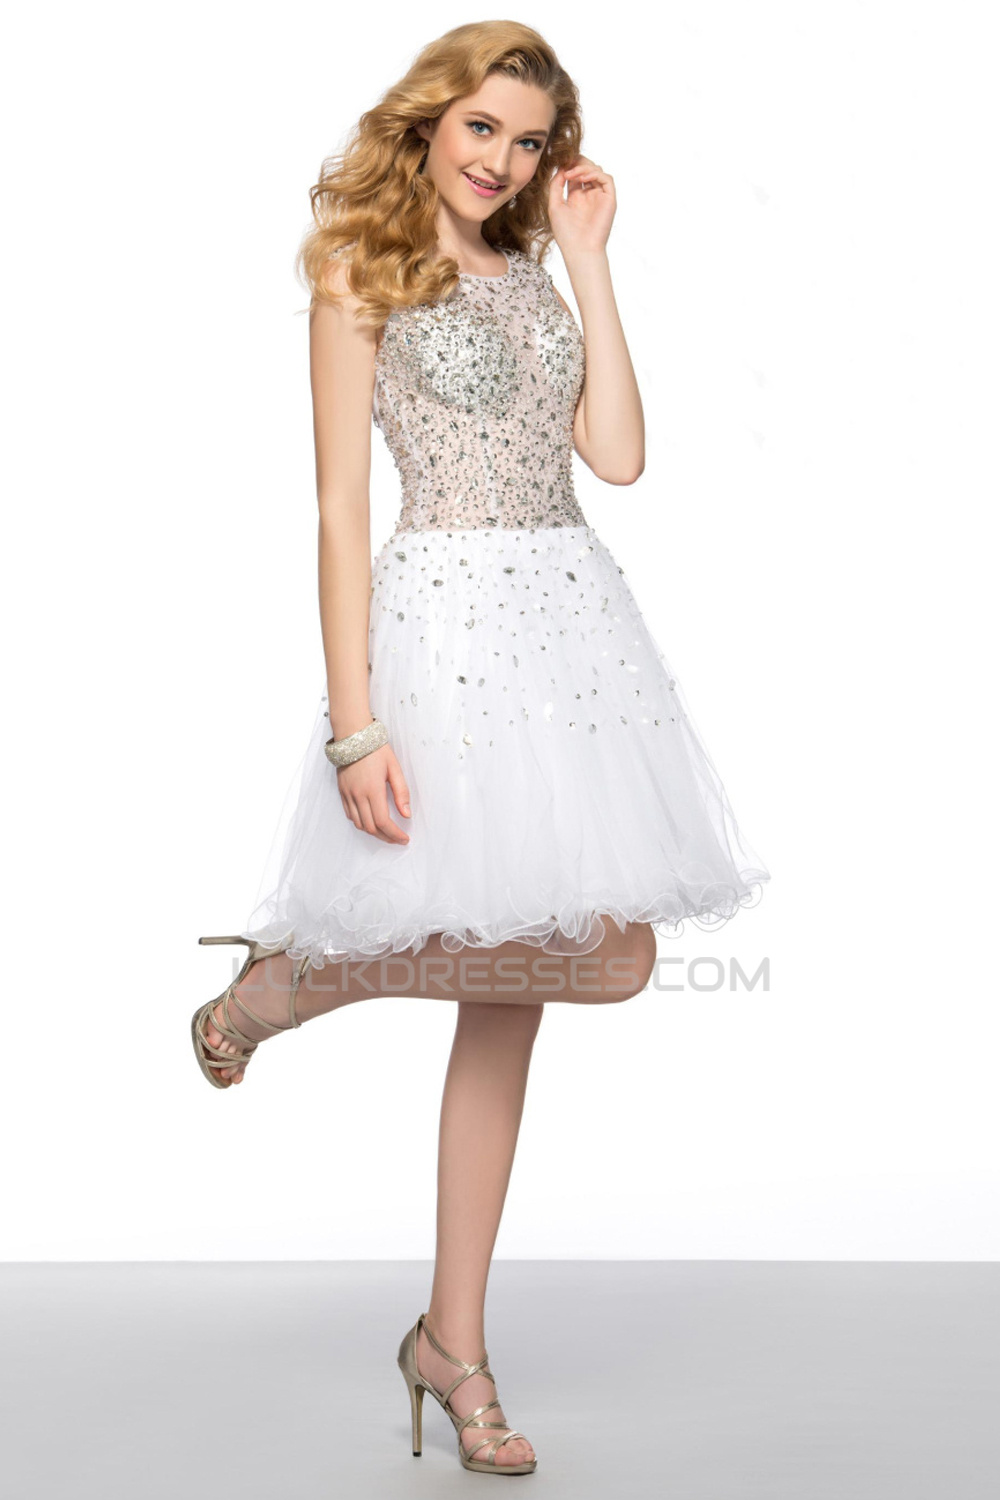 8629aee34b7d Modest Short Dresses For Homecoming - raveitsafe